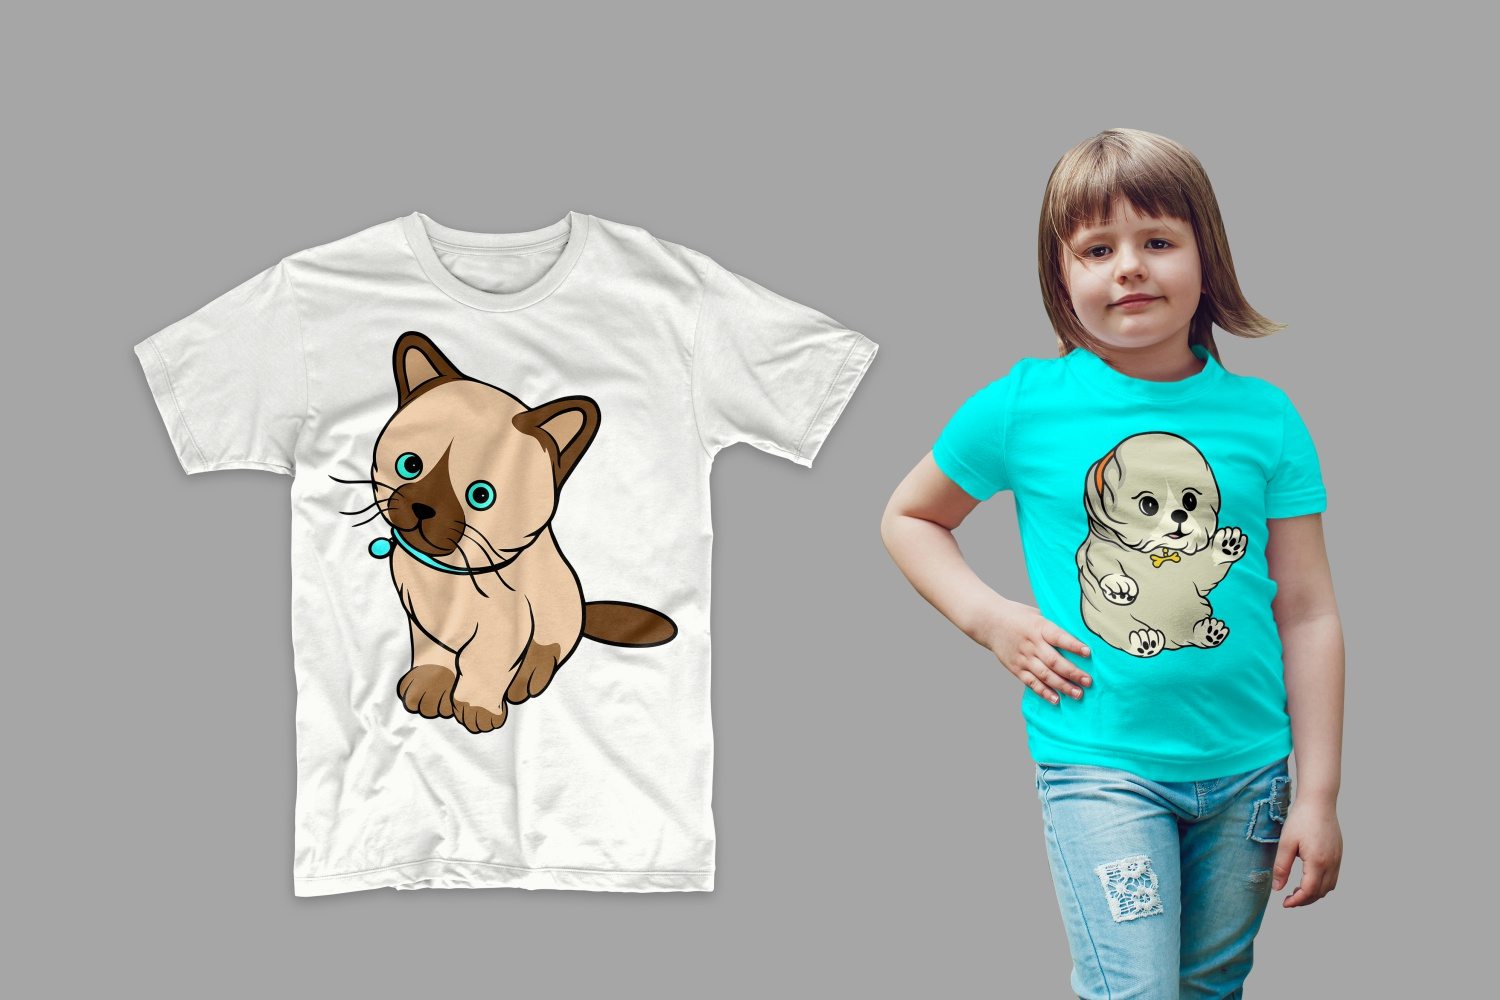 T-shirts with kittens.